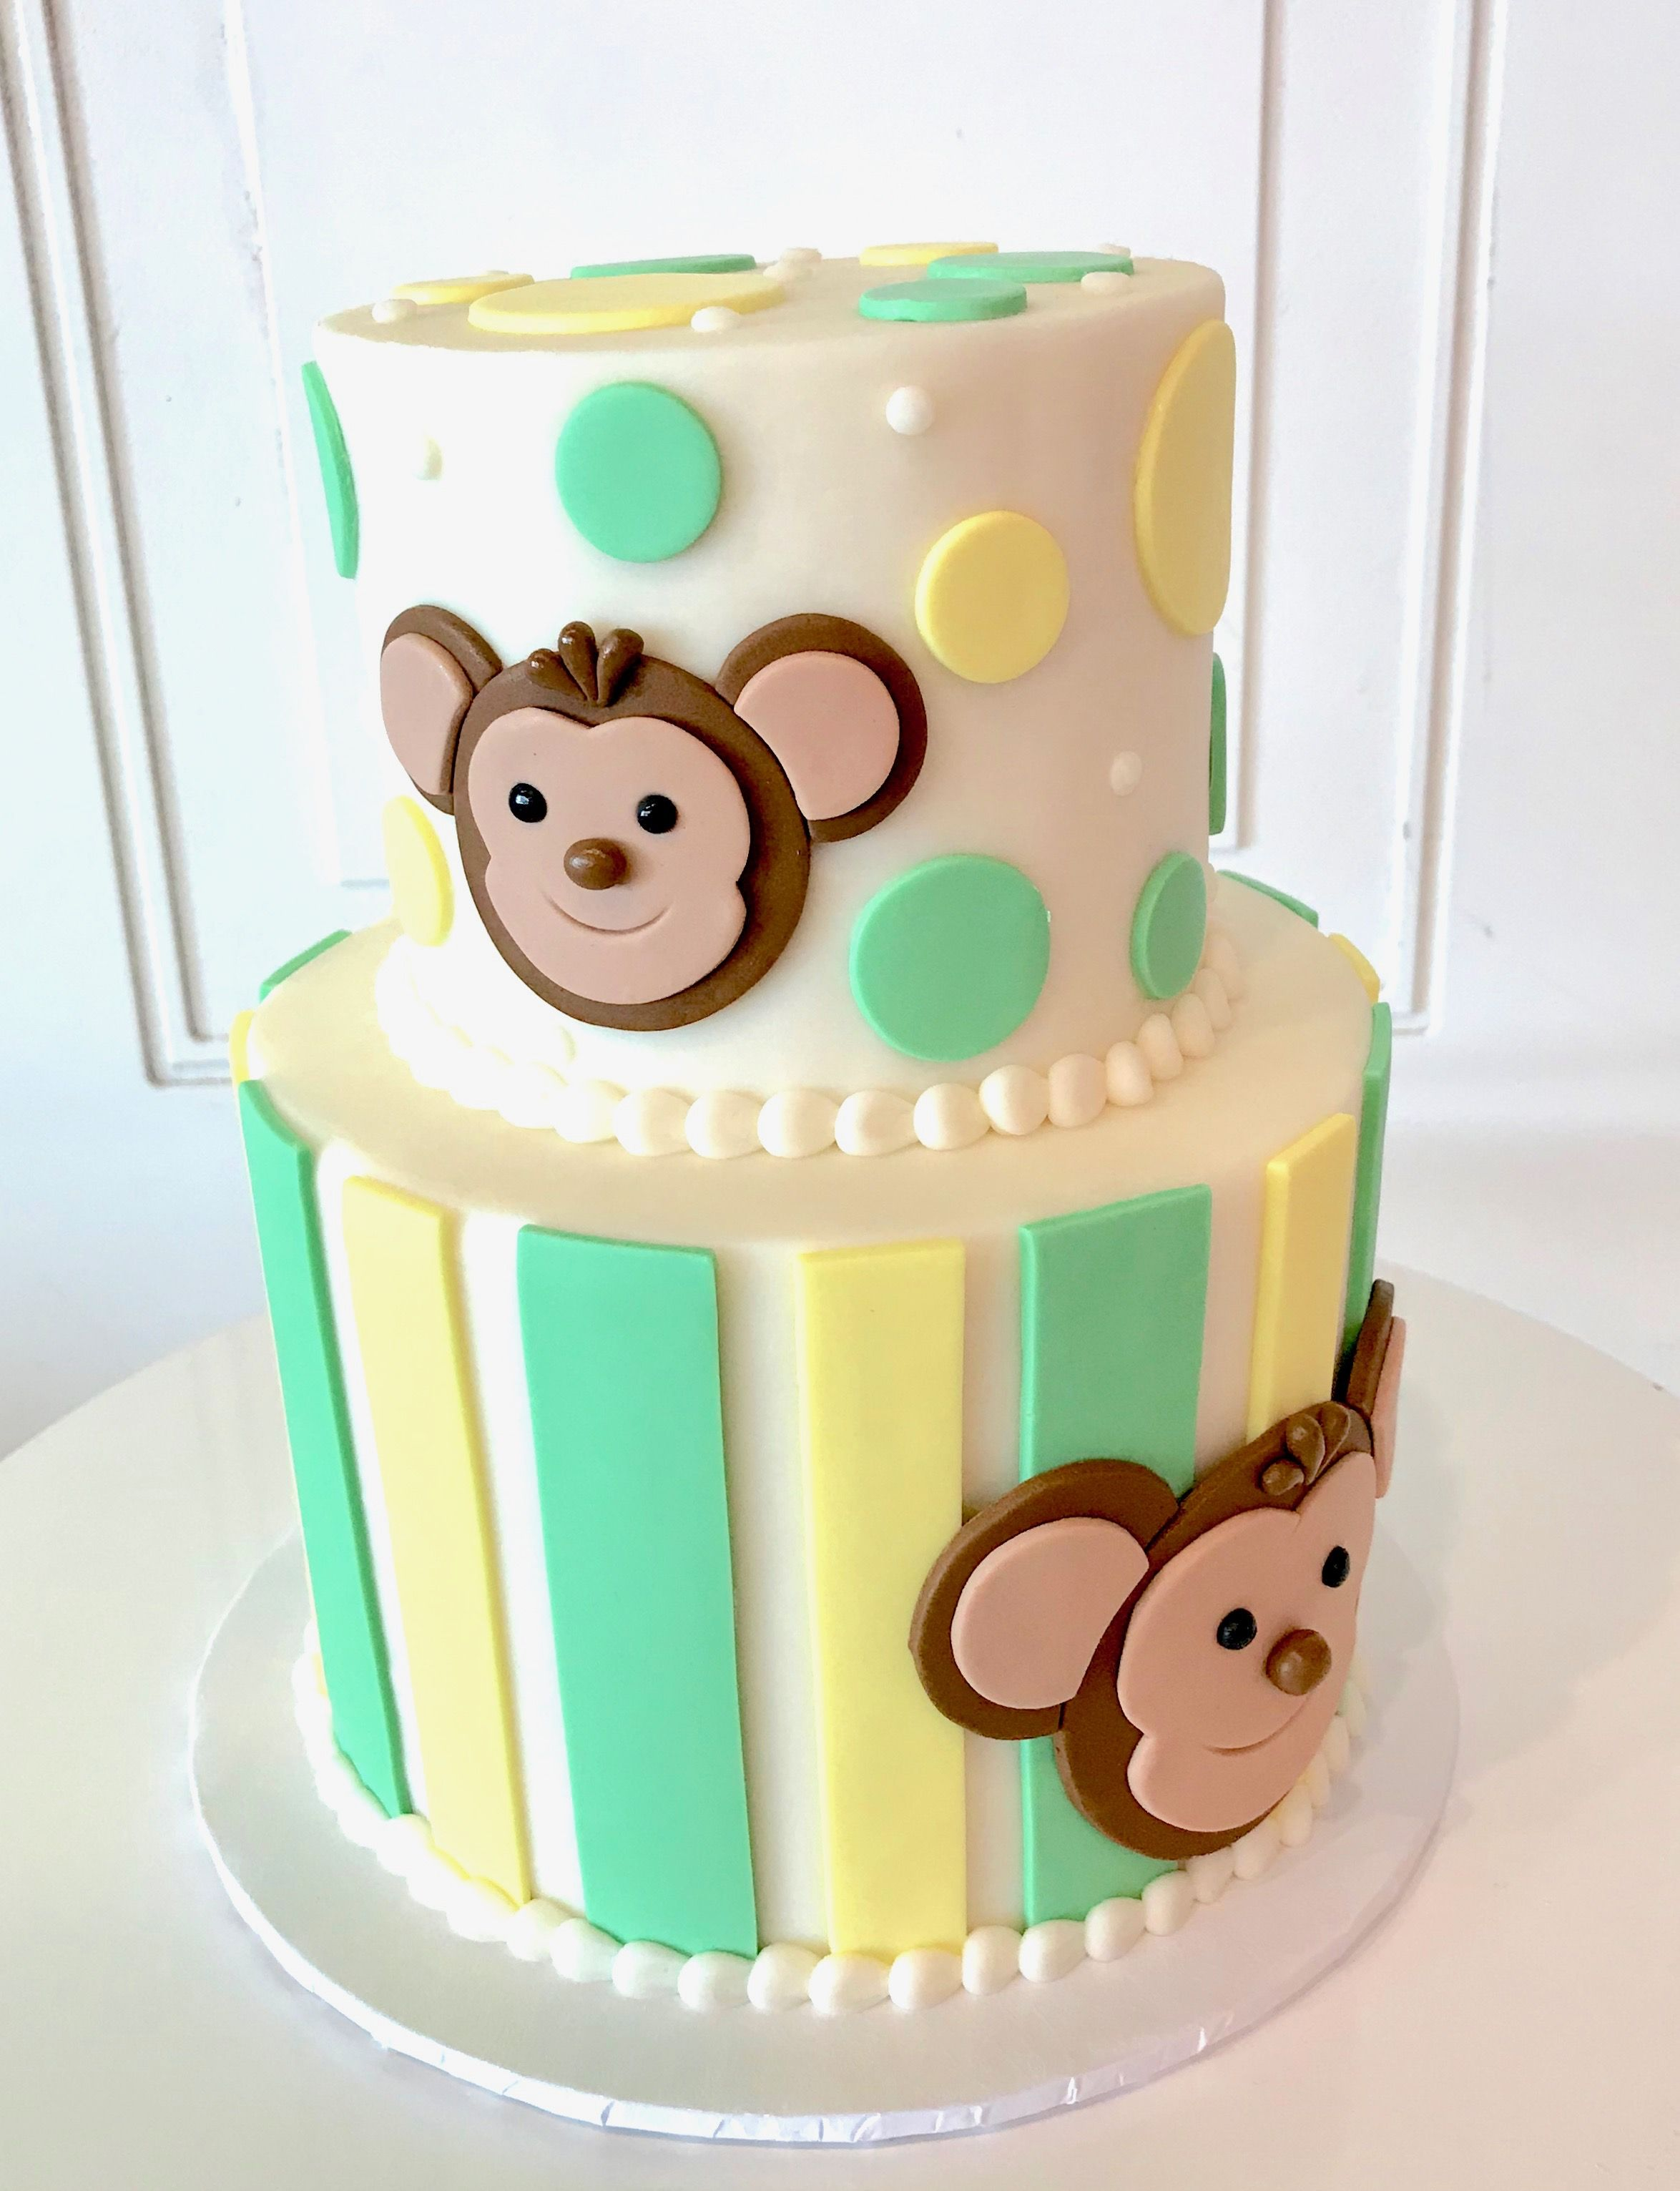 Baby Showers In 2019 Baby Shower Cakes By 3 Sweet Girls Cakery